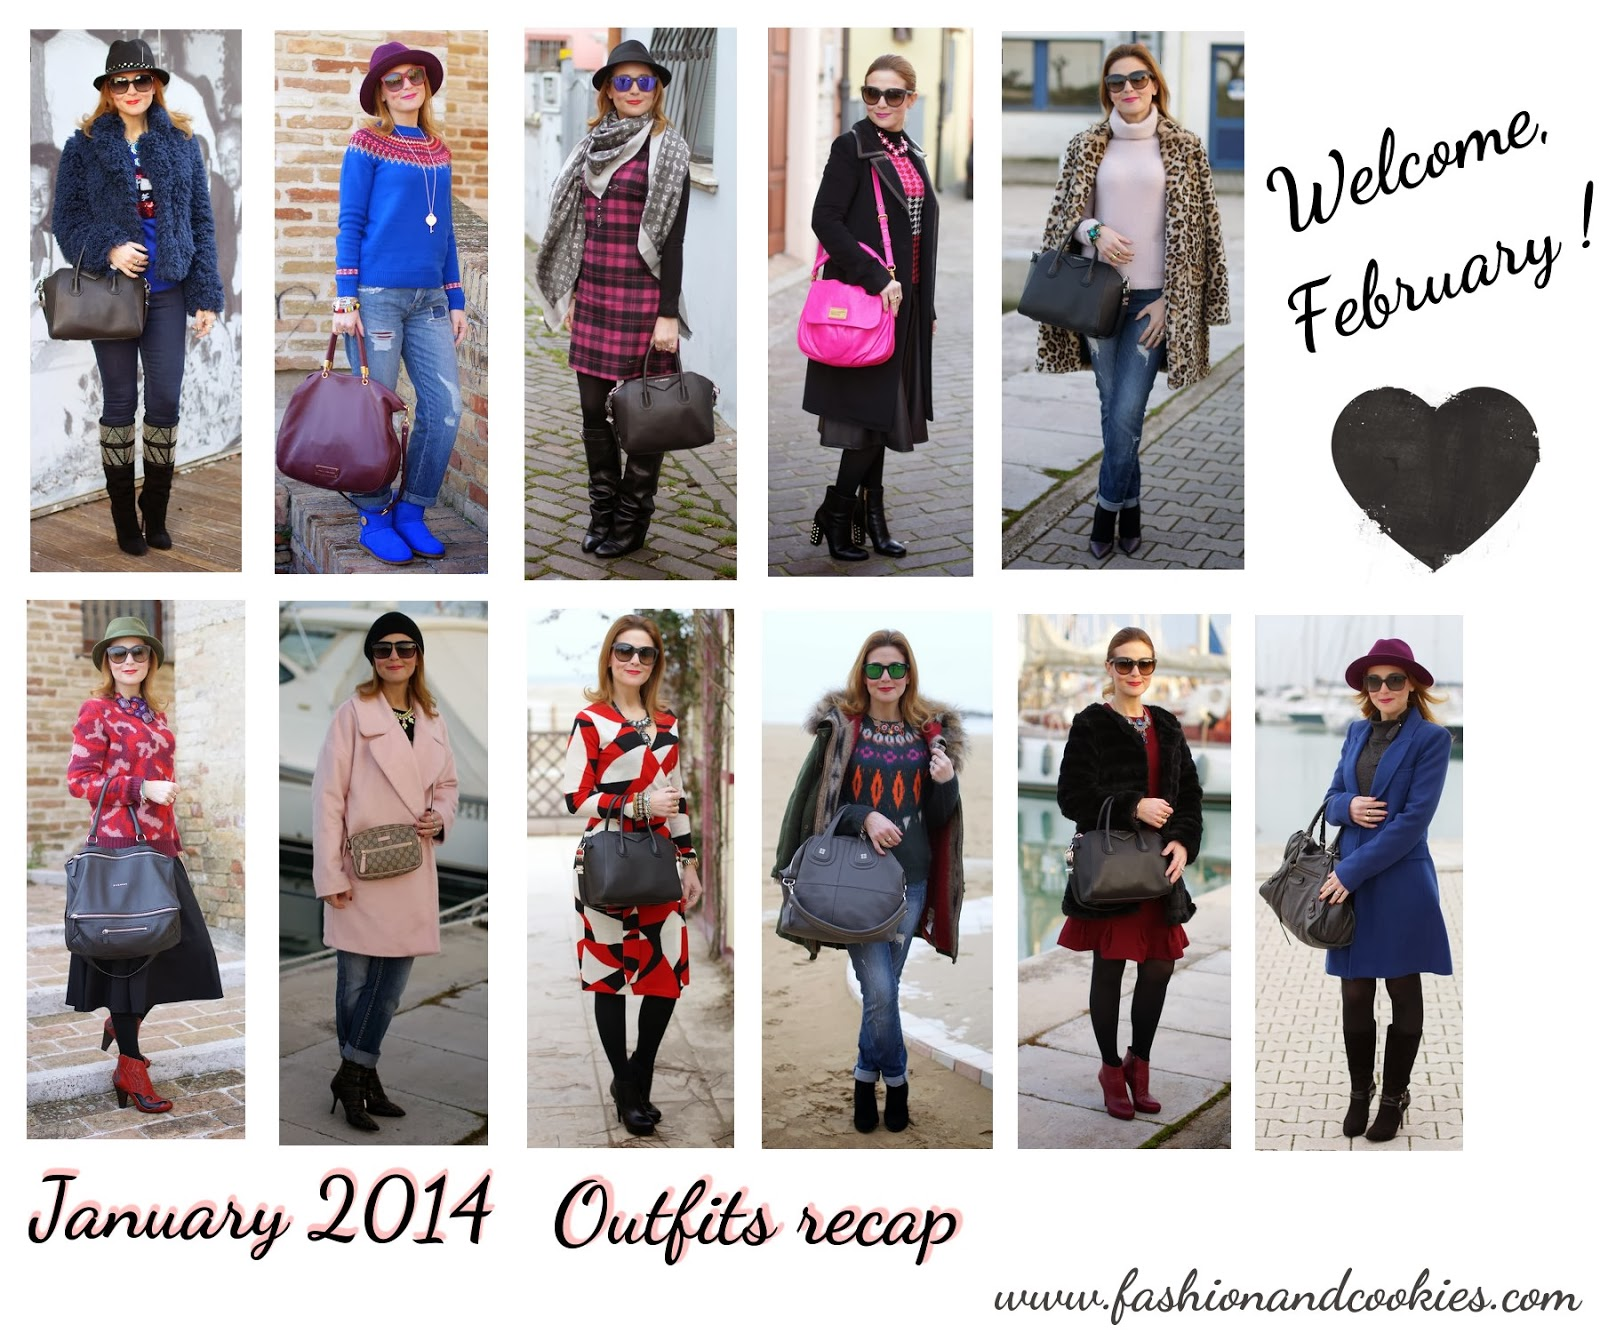 January 2014 outfits recap on Fashion and Cookies, Welcome February